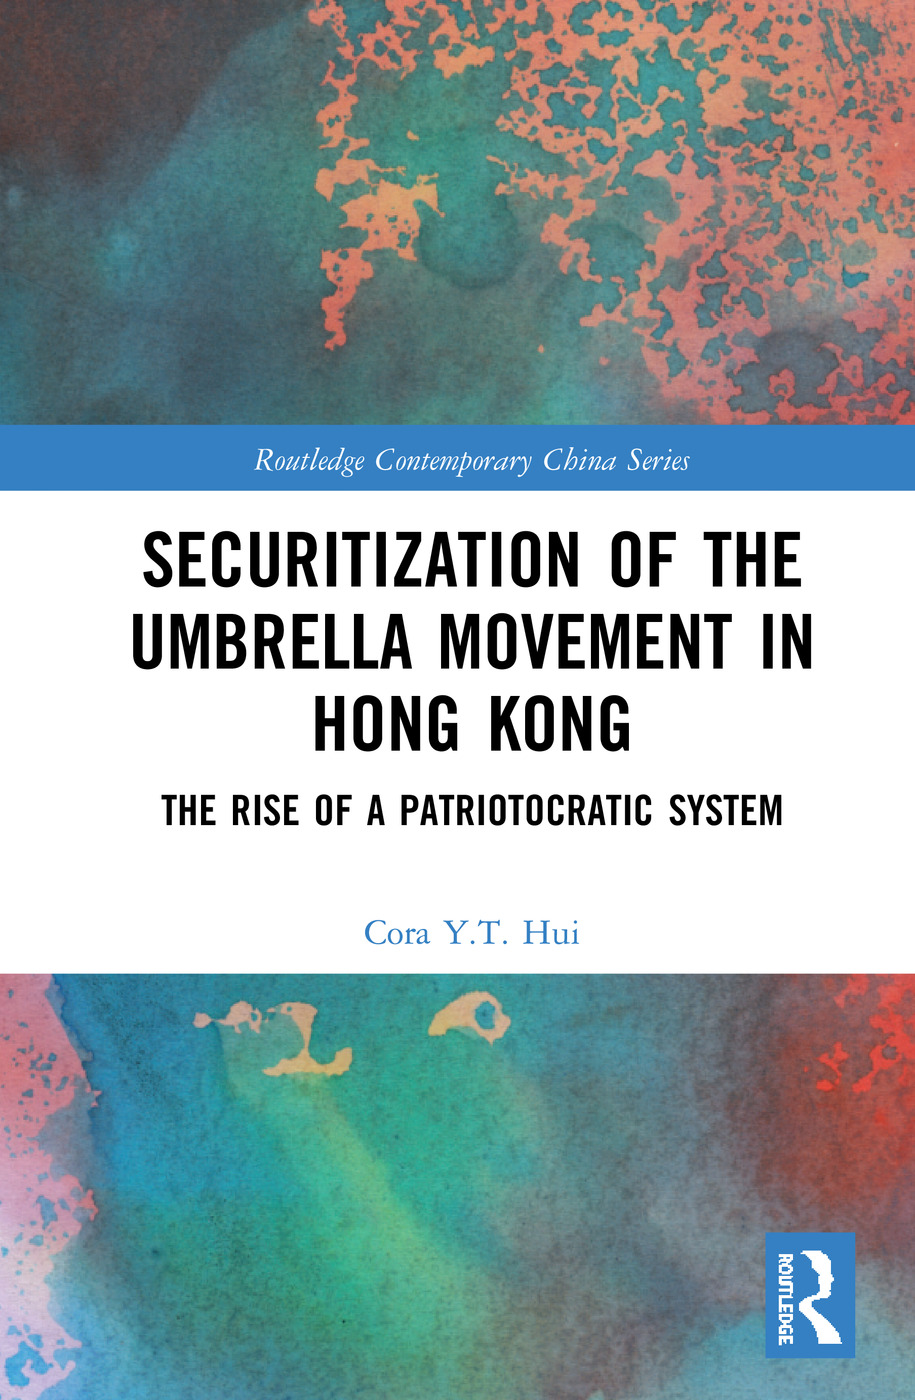 Securitization of the Umbrella Movement in Hong Kong: The Rise of a Patriotocratic System book cover